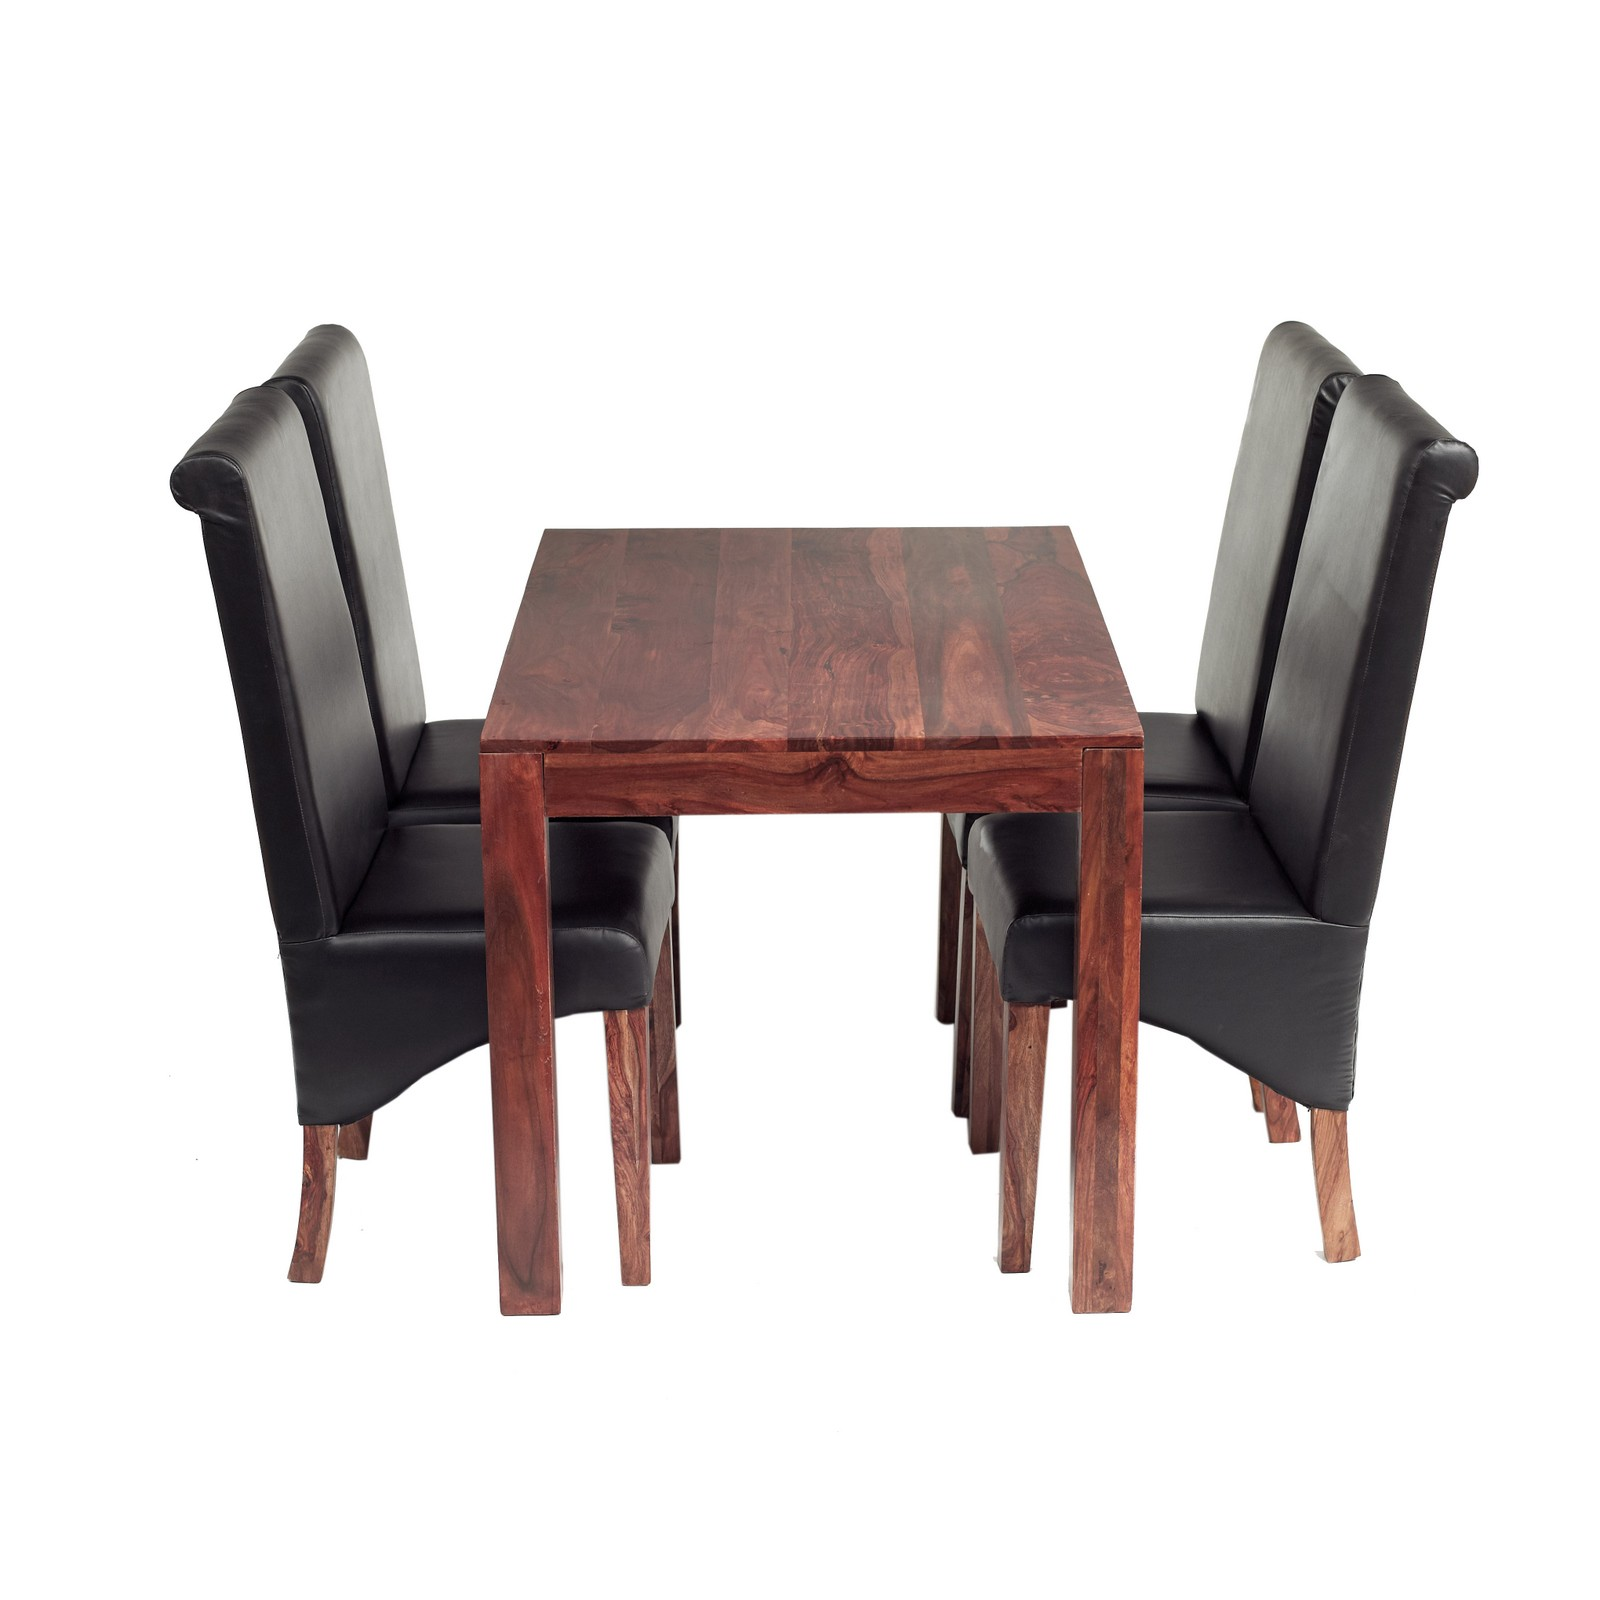 Cube Sheesham 4 Ft Dining Set With Leather Chairs Verty